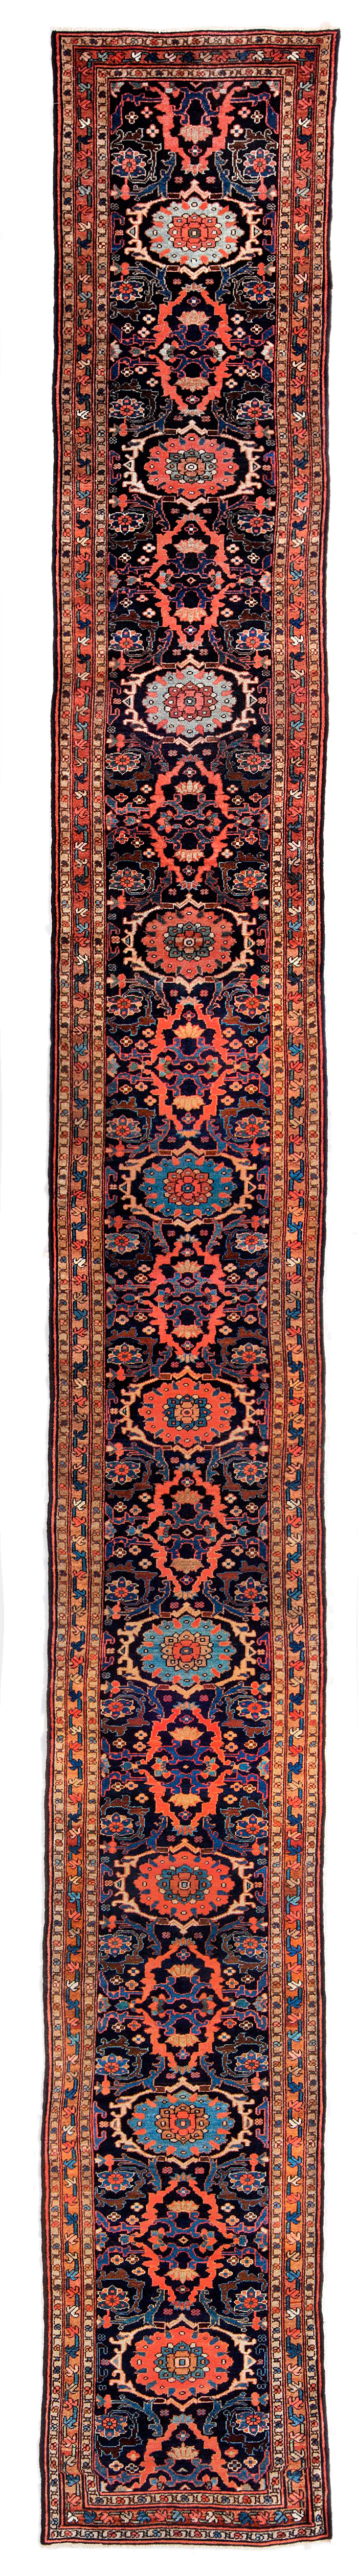 Northwest Persian Runner_17380